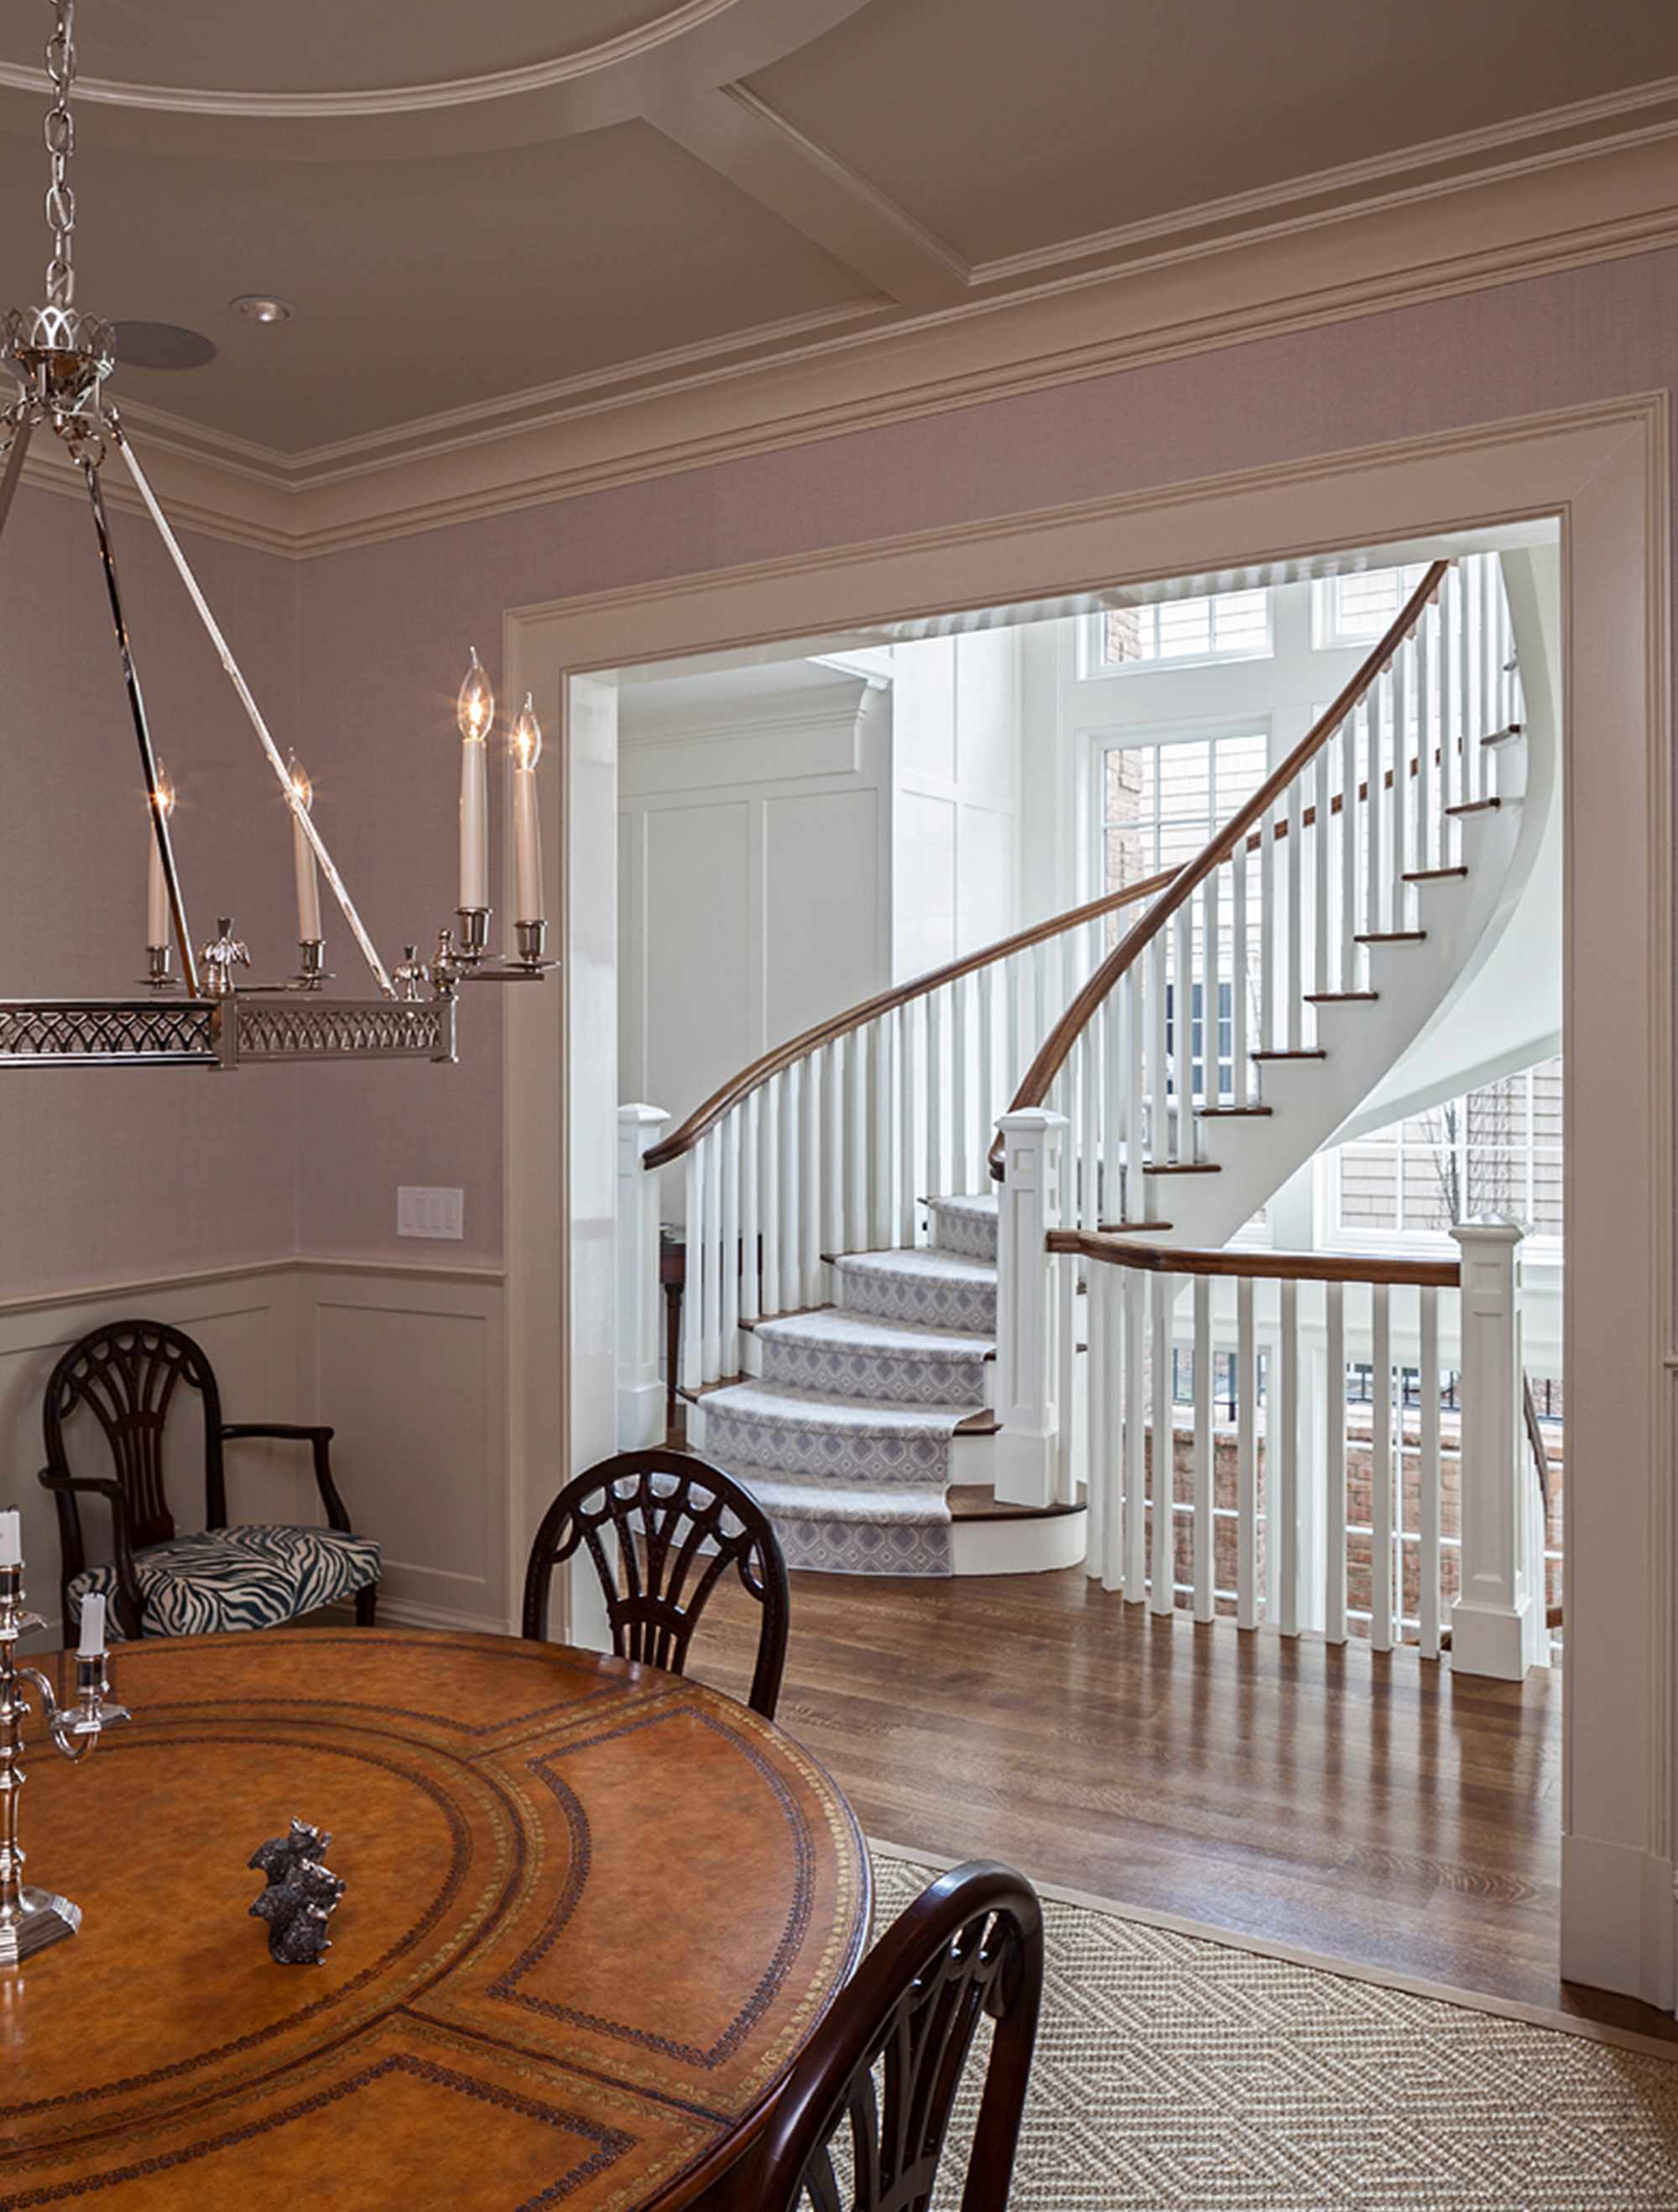 Staircase and Dining Room Table